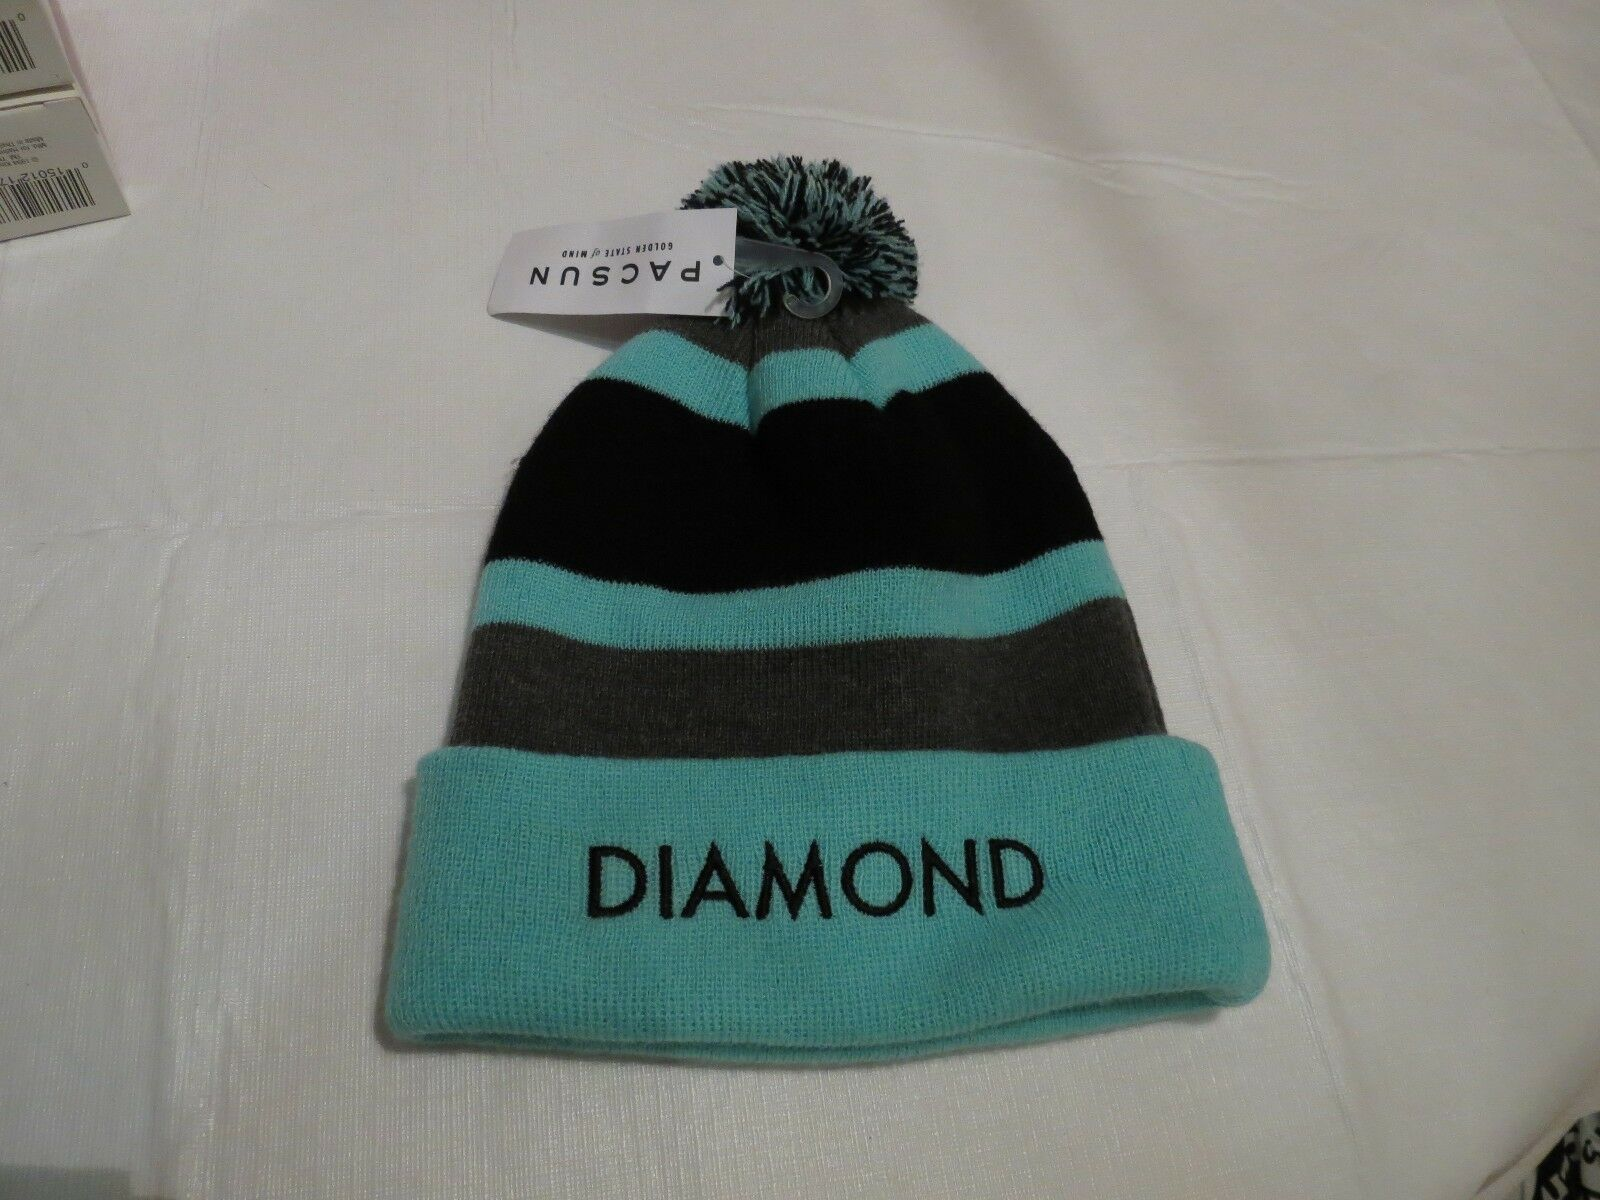 Diamond Supply Co beanie knit hat cold cap NEW RARE winter cold hat weather mint black gr 957841